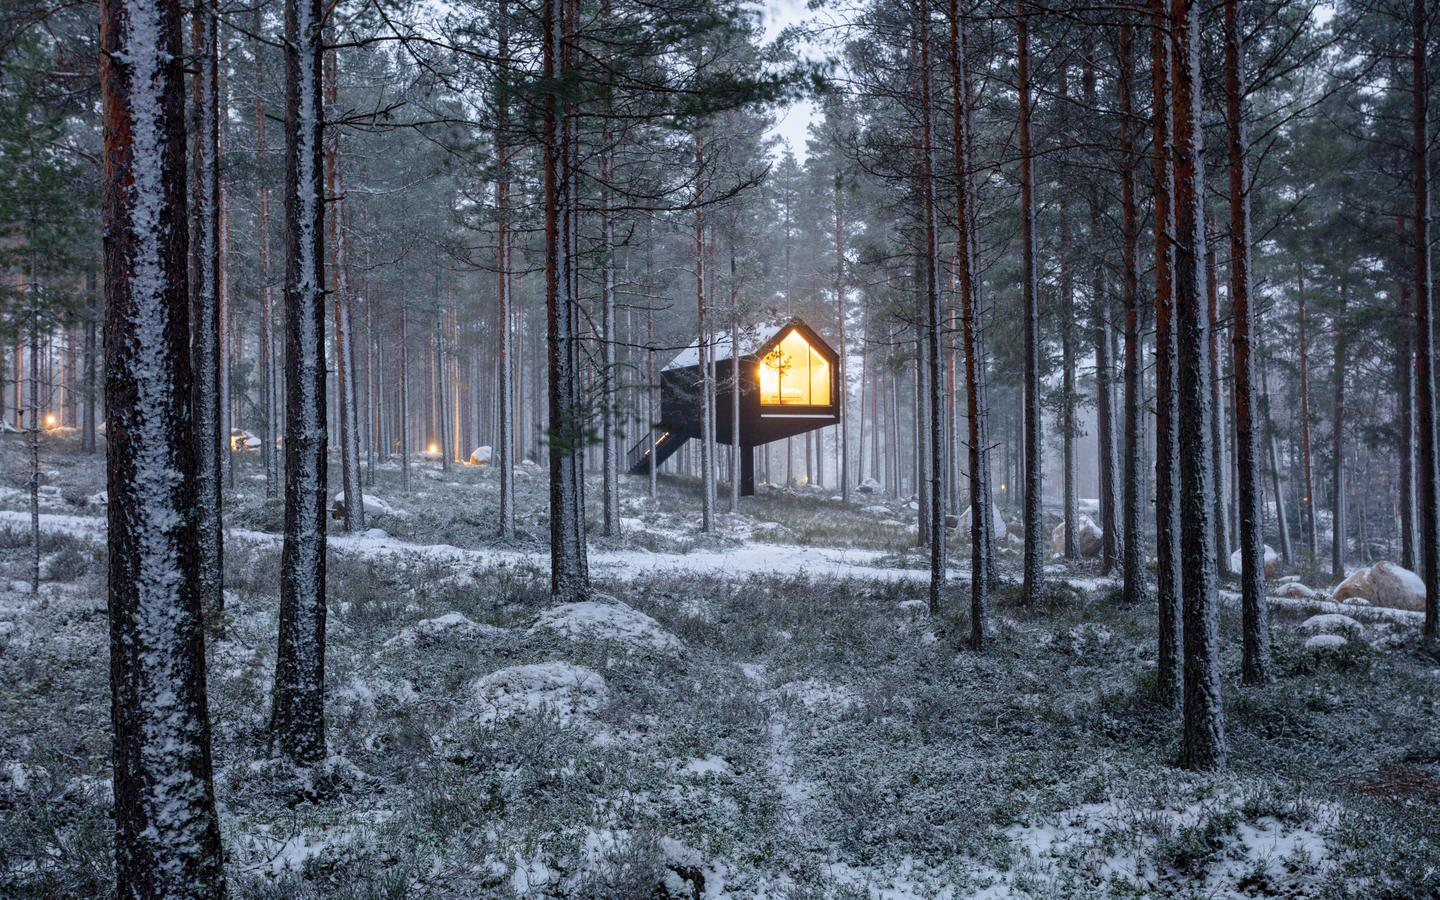 Helsinki-based architectural firm Studio Puisto has recently accomplished the first of 25 tiny tree-top cabins